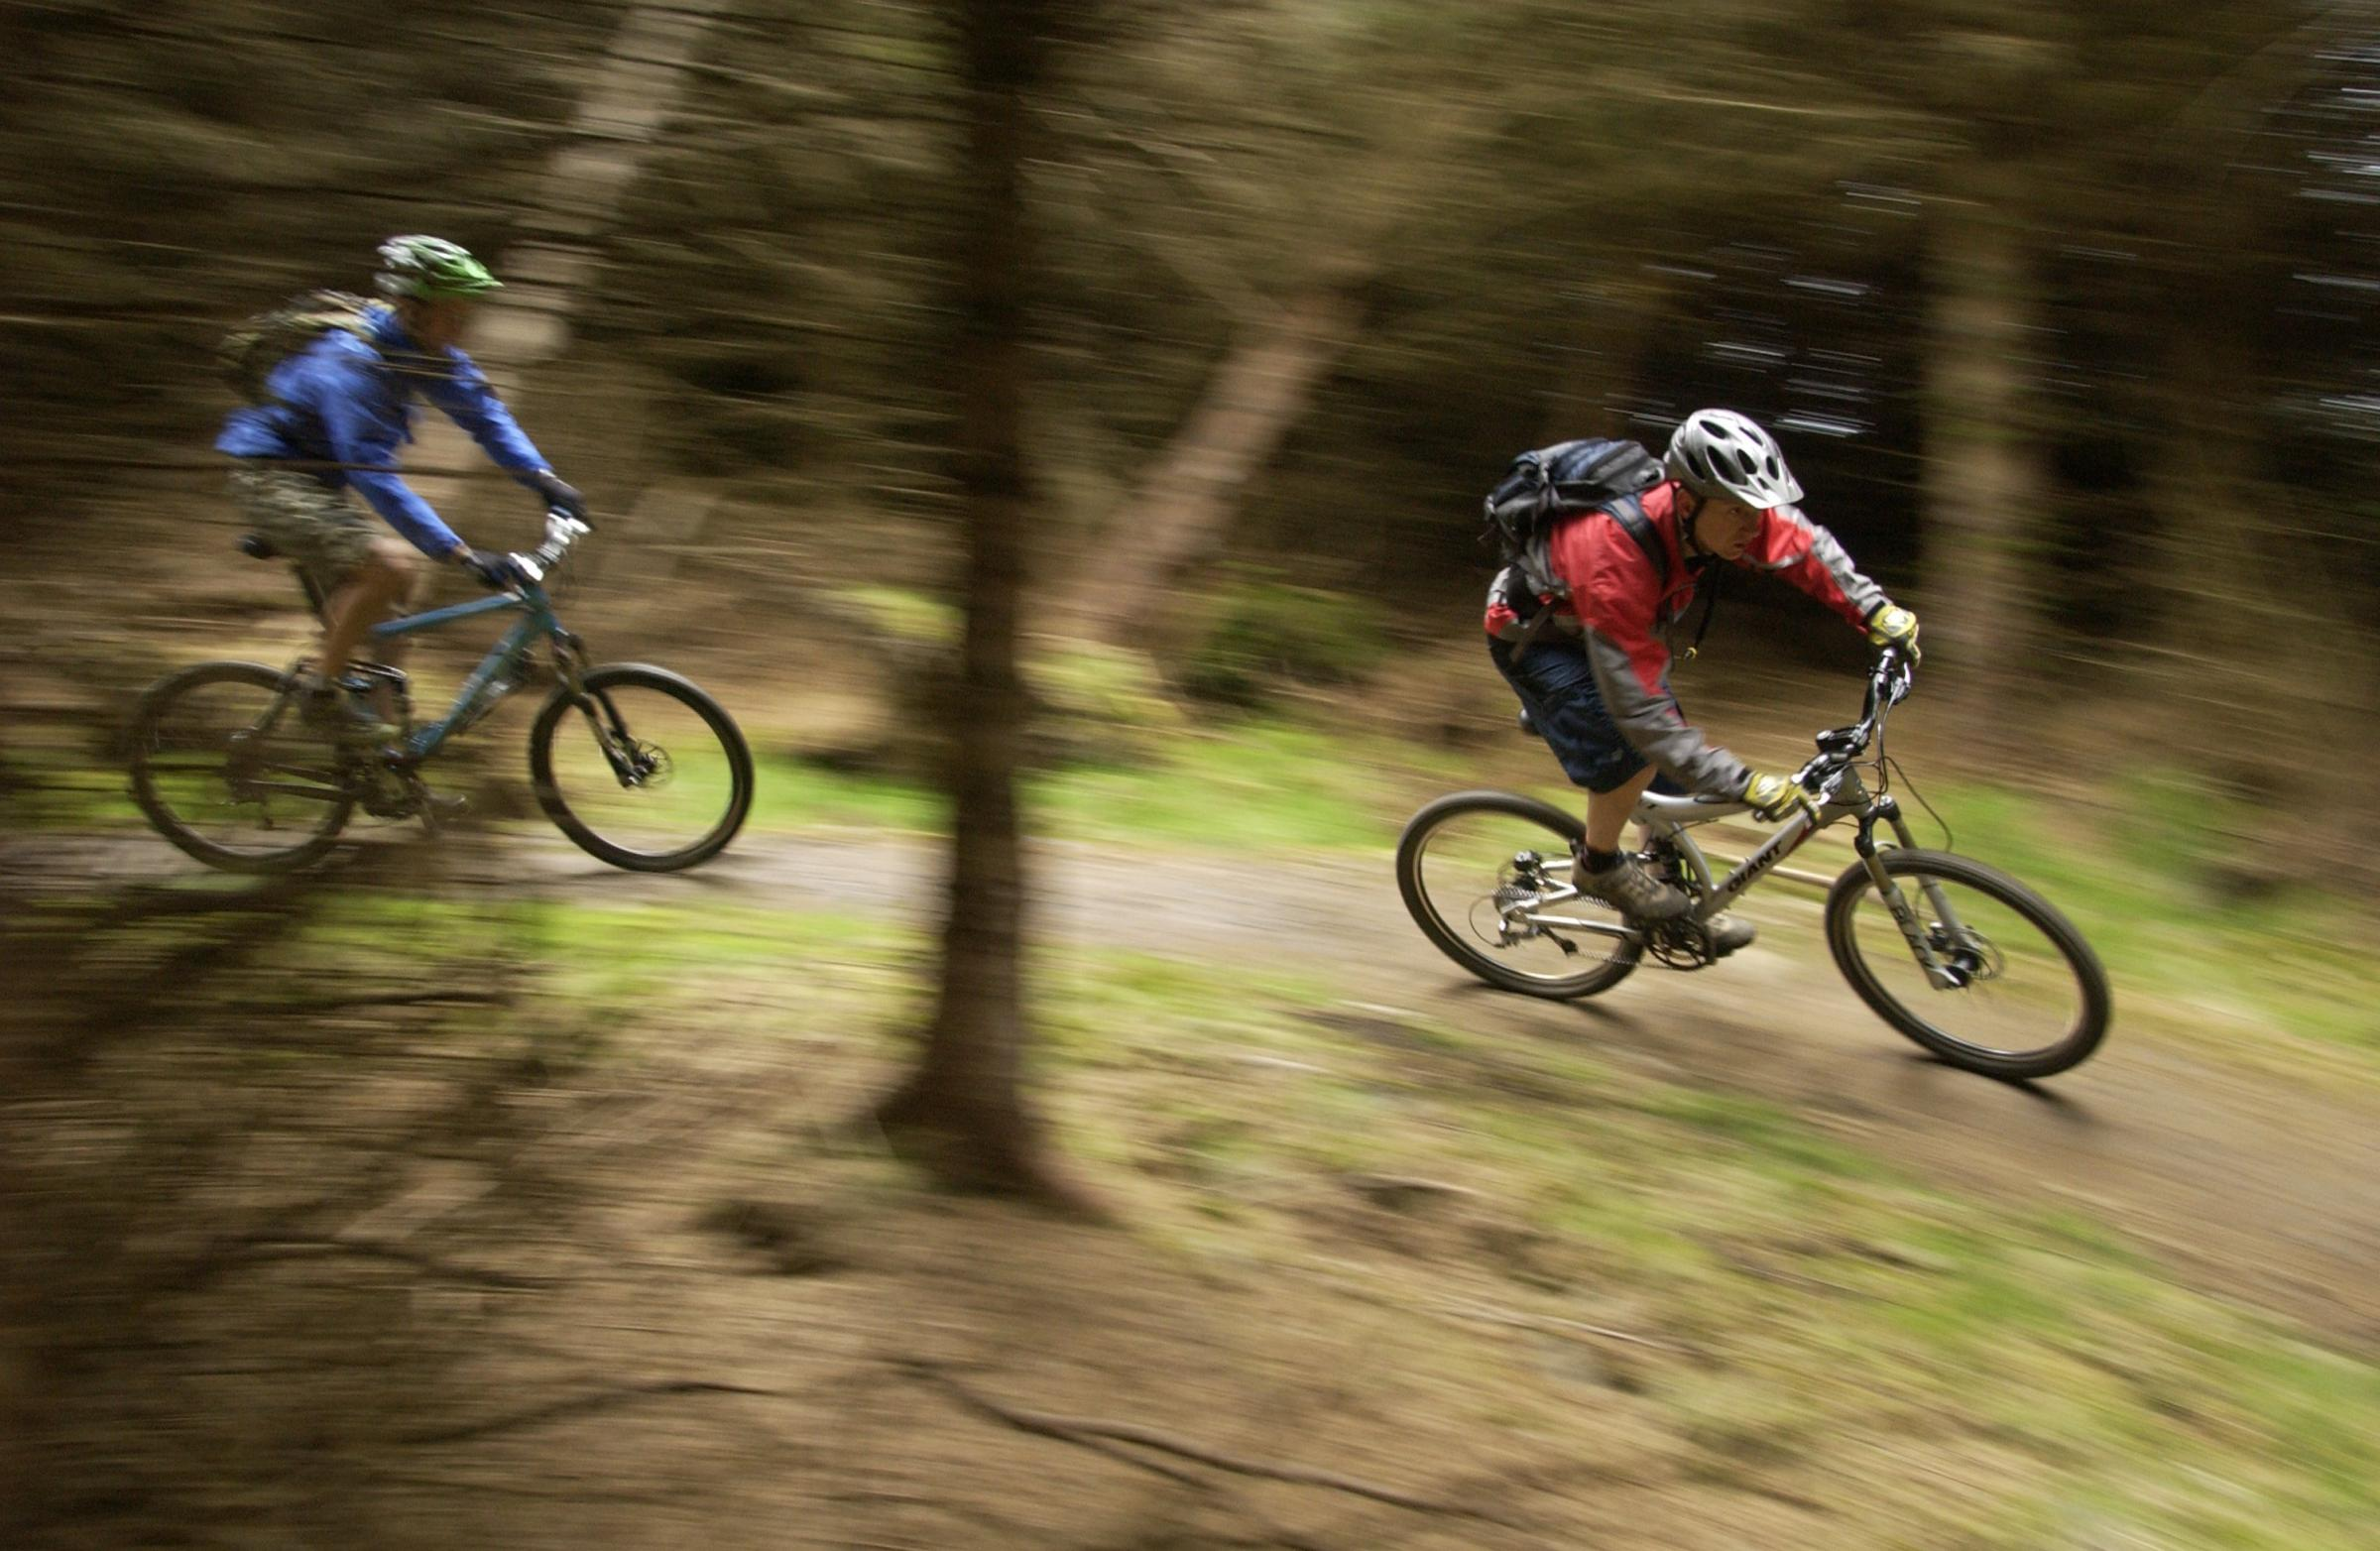 The 7stanes mountain biking trails at Glentress Forest in Peebles are among Scottish attractions popular with young people